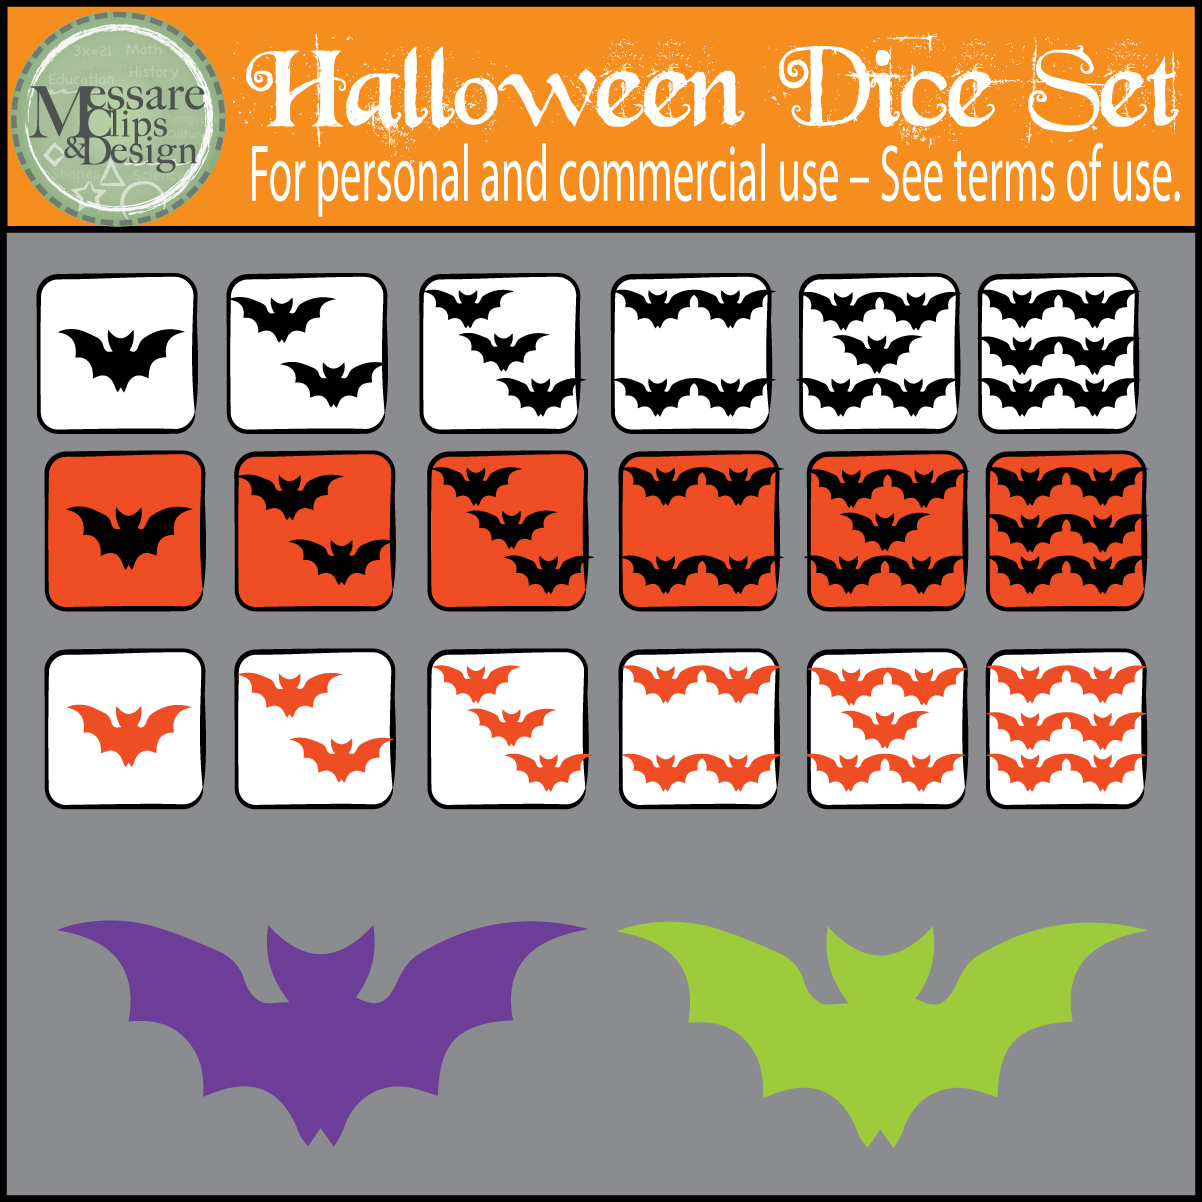 Halloween Counting Dice Amp Bat Clip Art Set Messare Clips